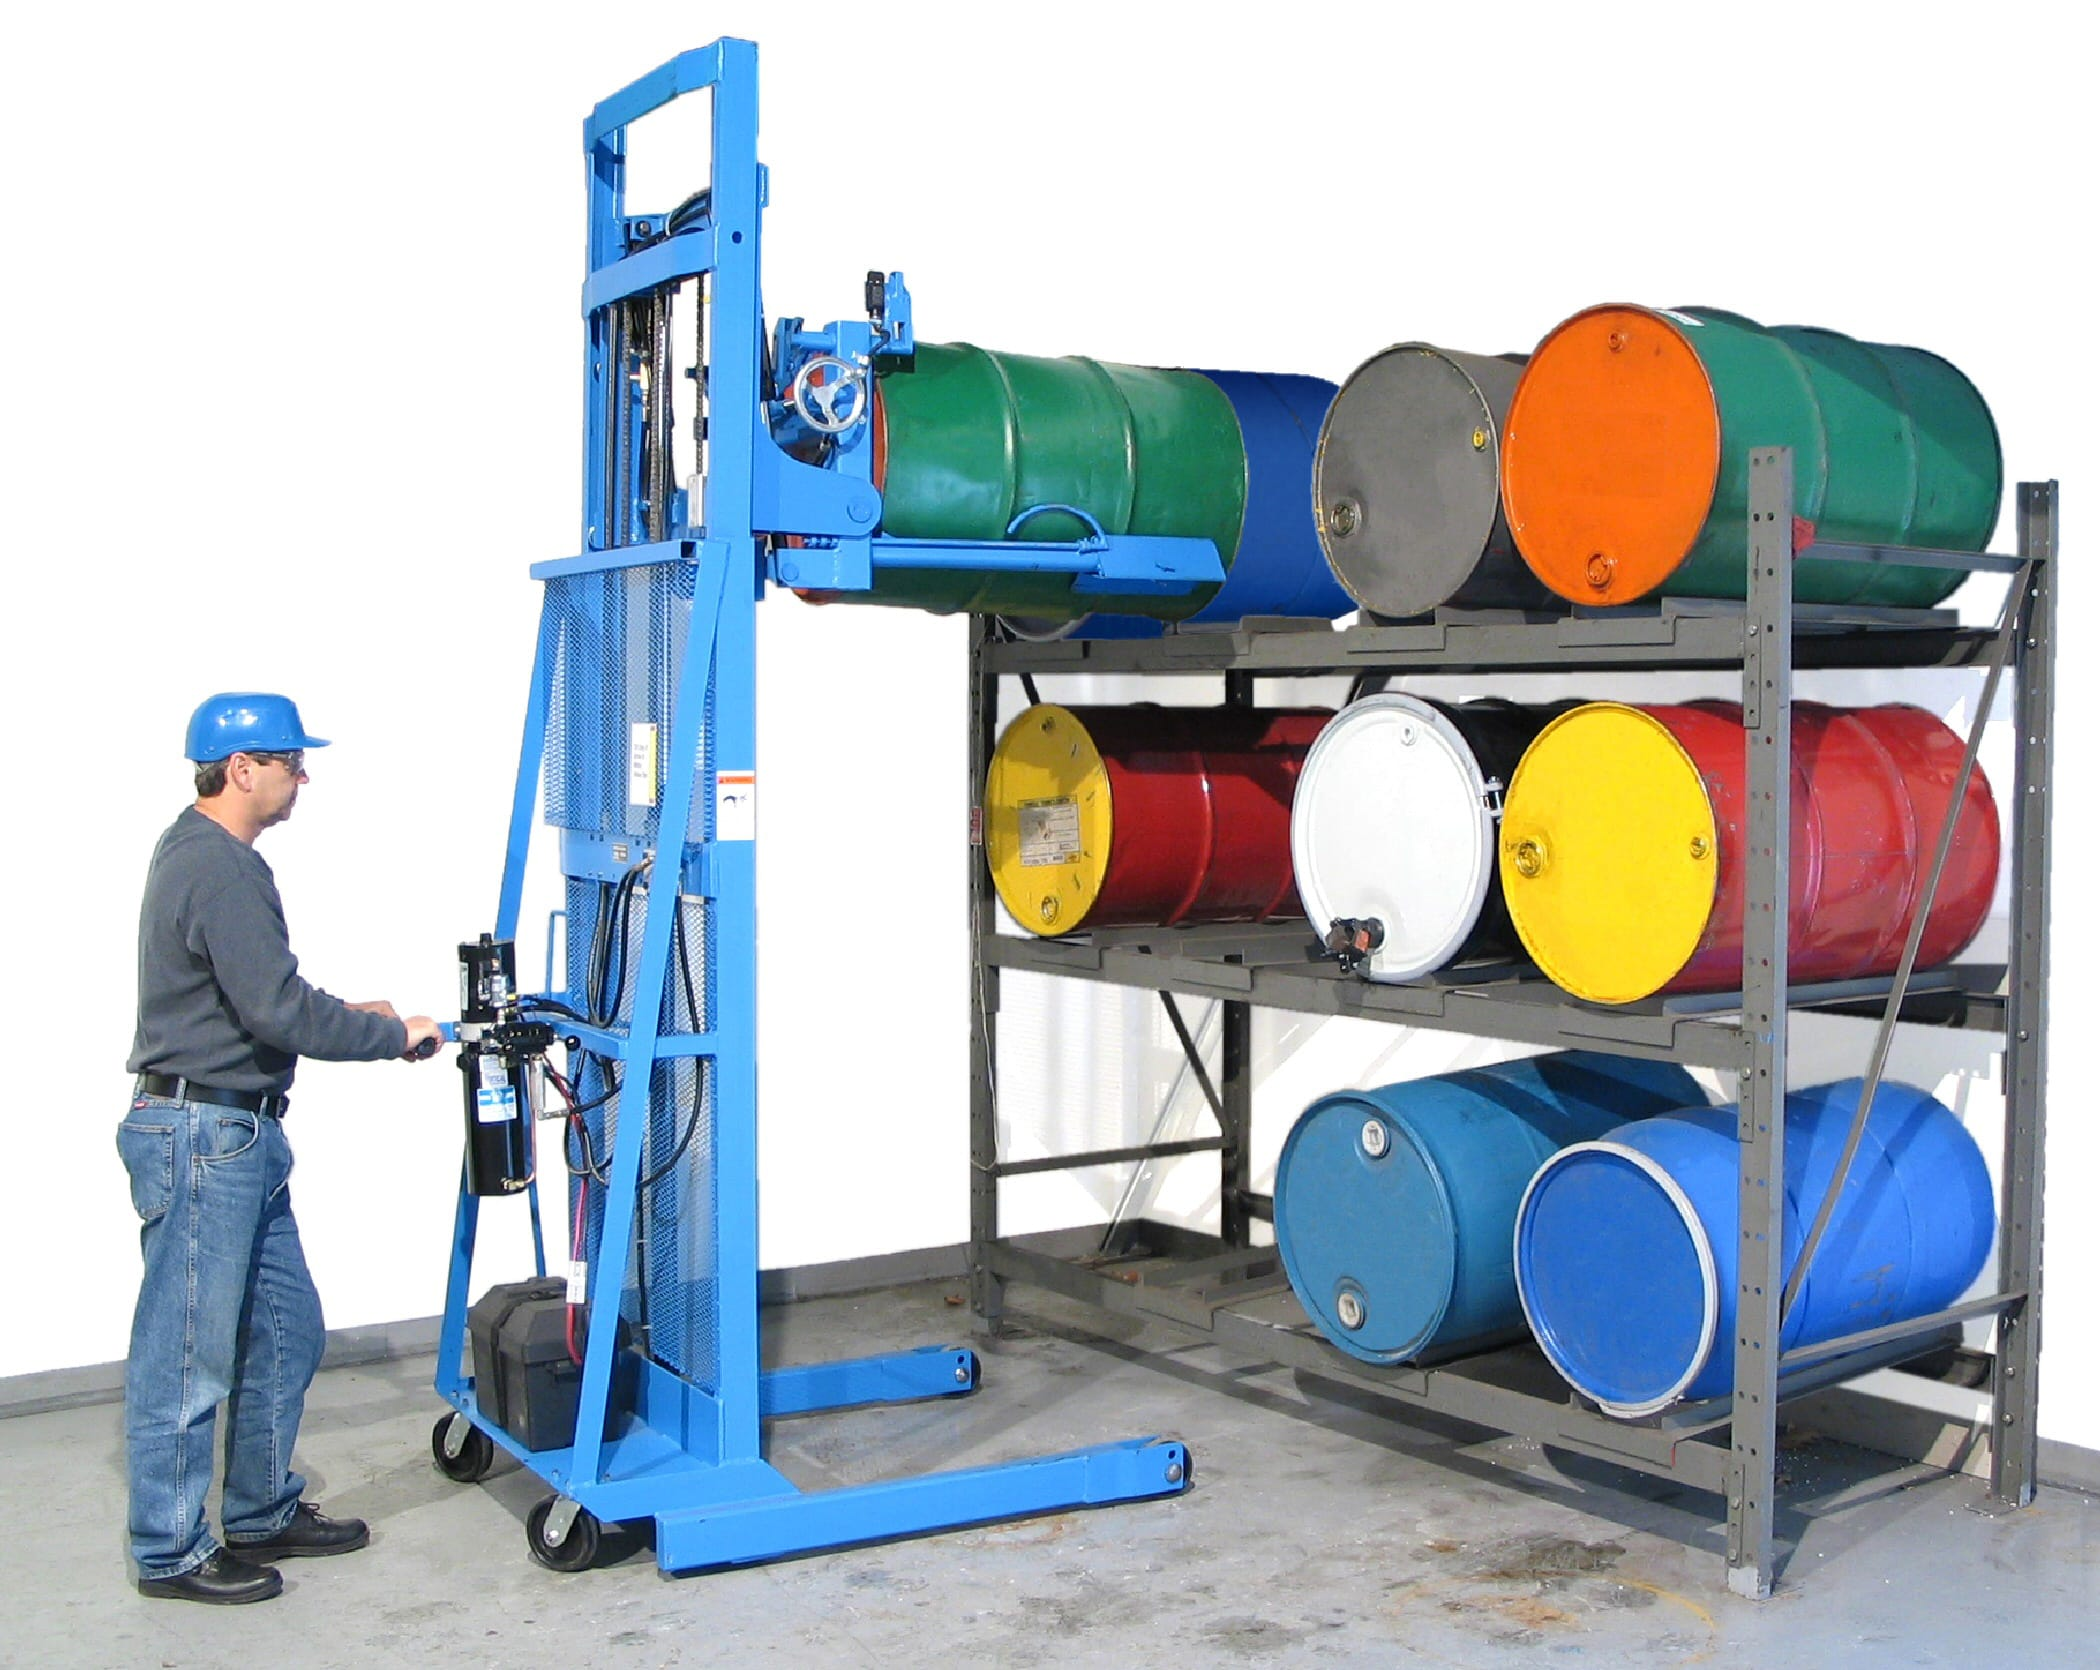 Drum Handling Equipment Is An Industrial Supply That